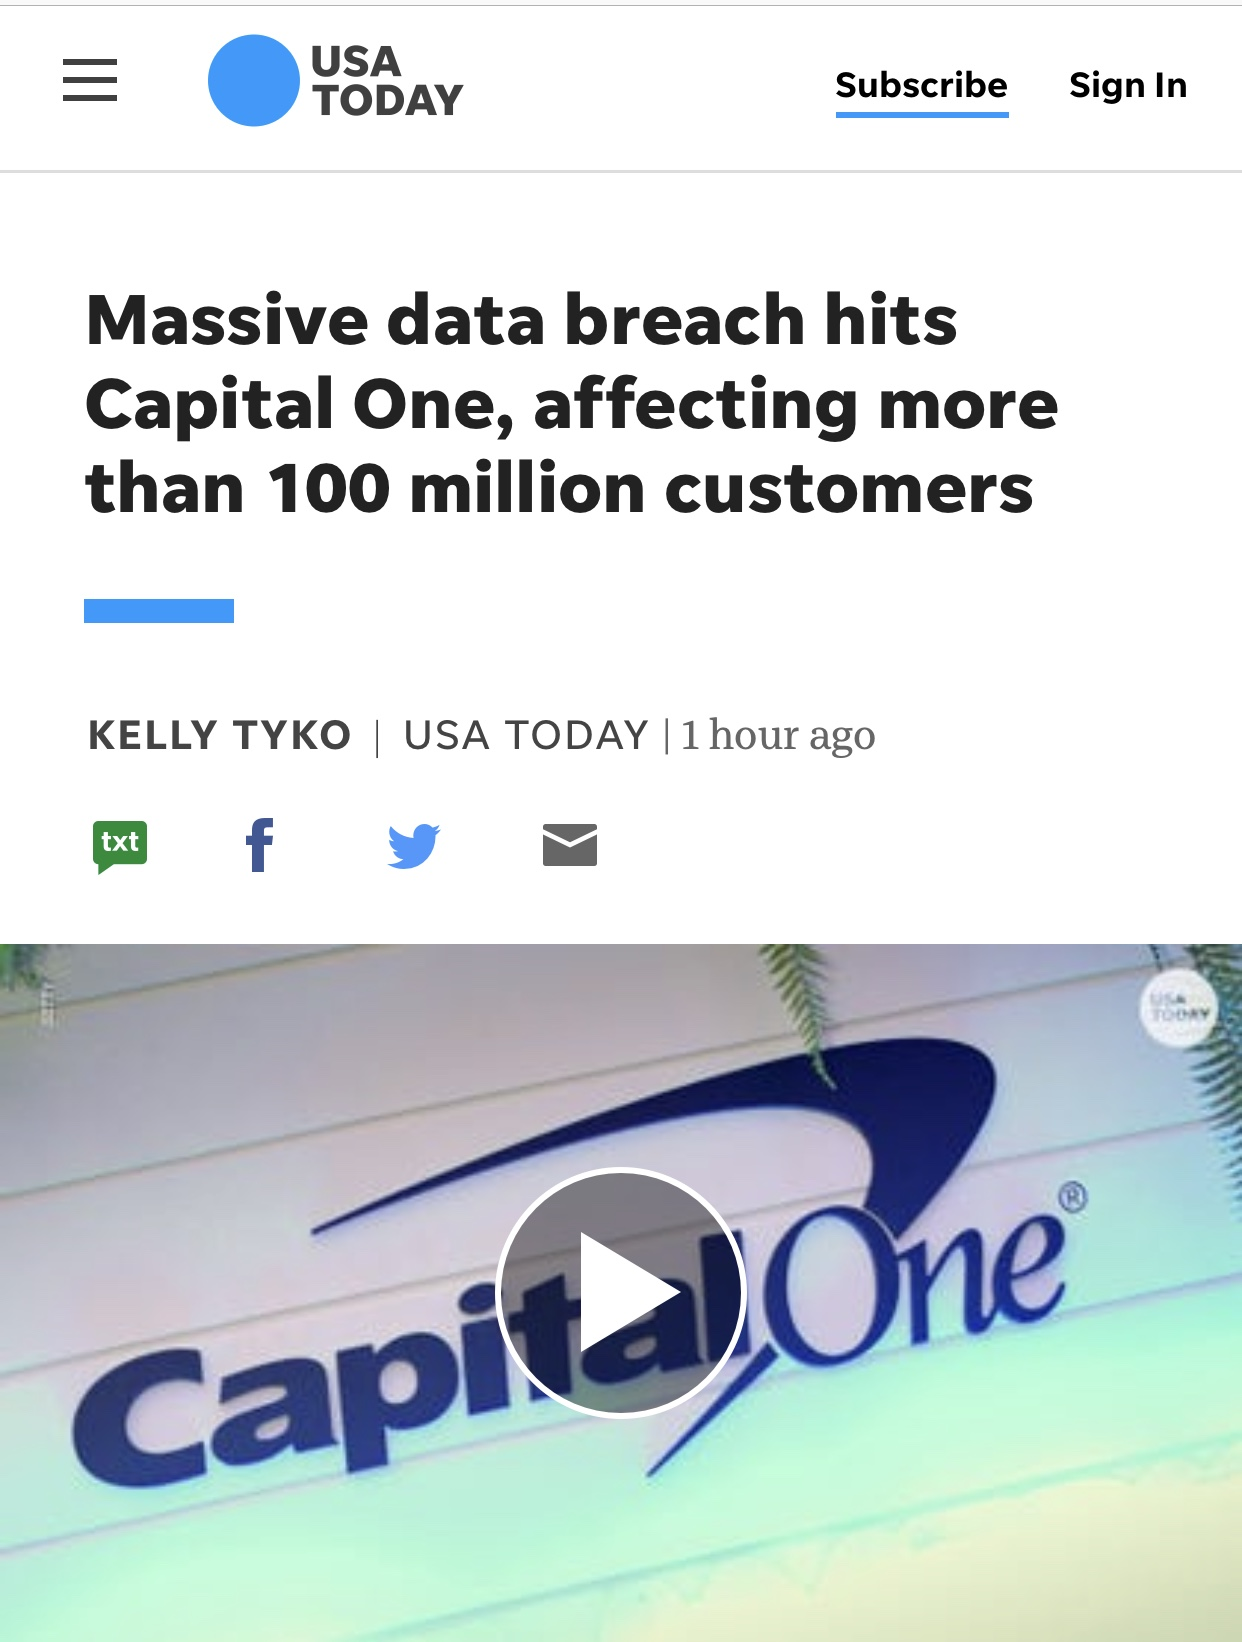 Massive data breach hits Capital One, affecting more than 100 million customers